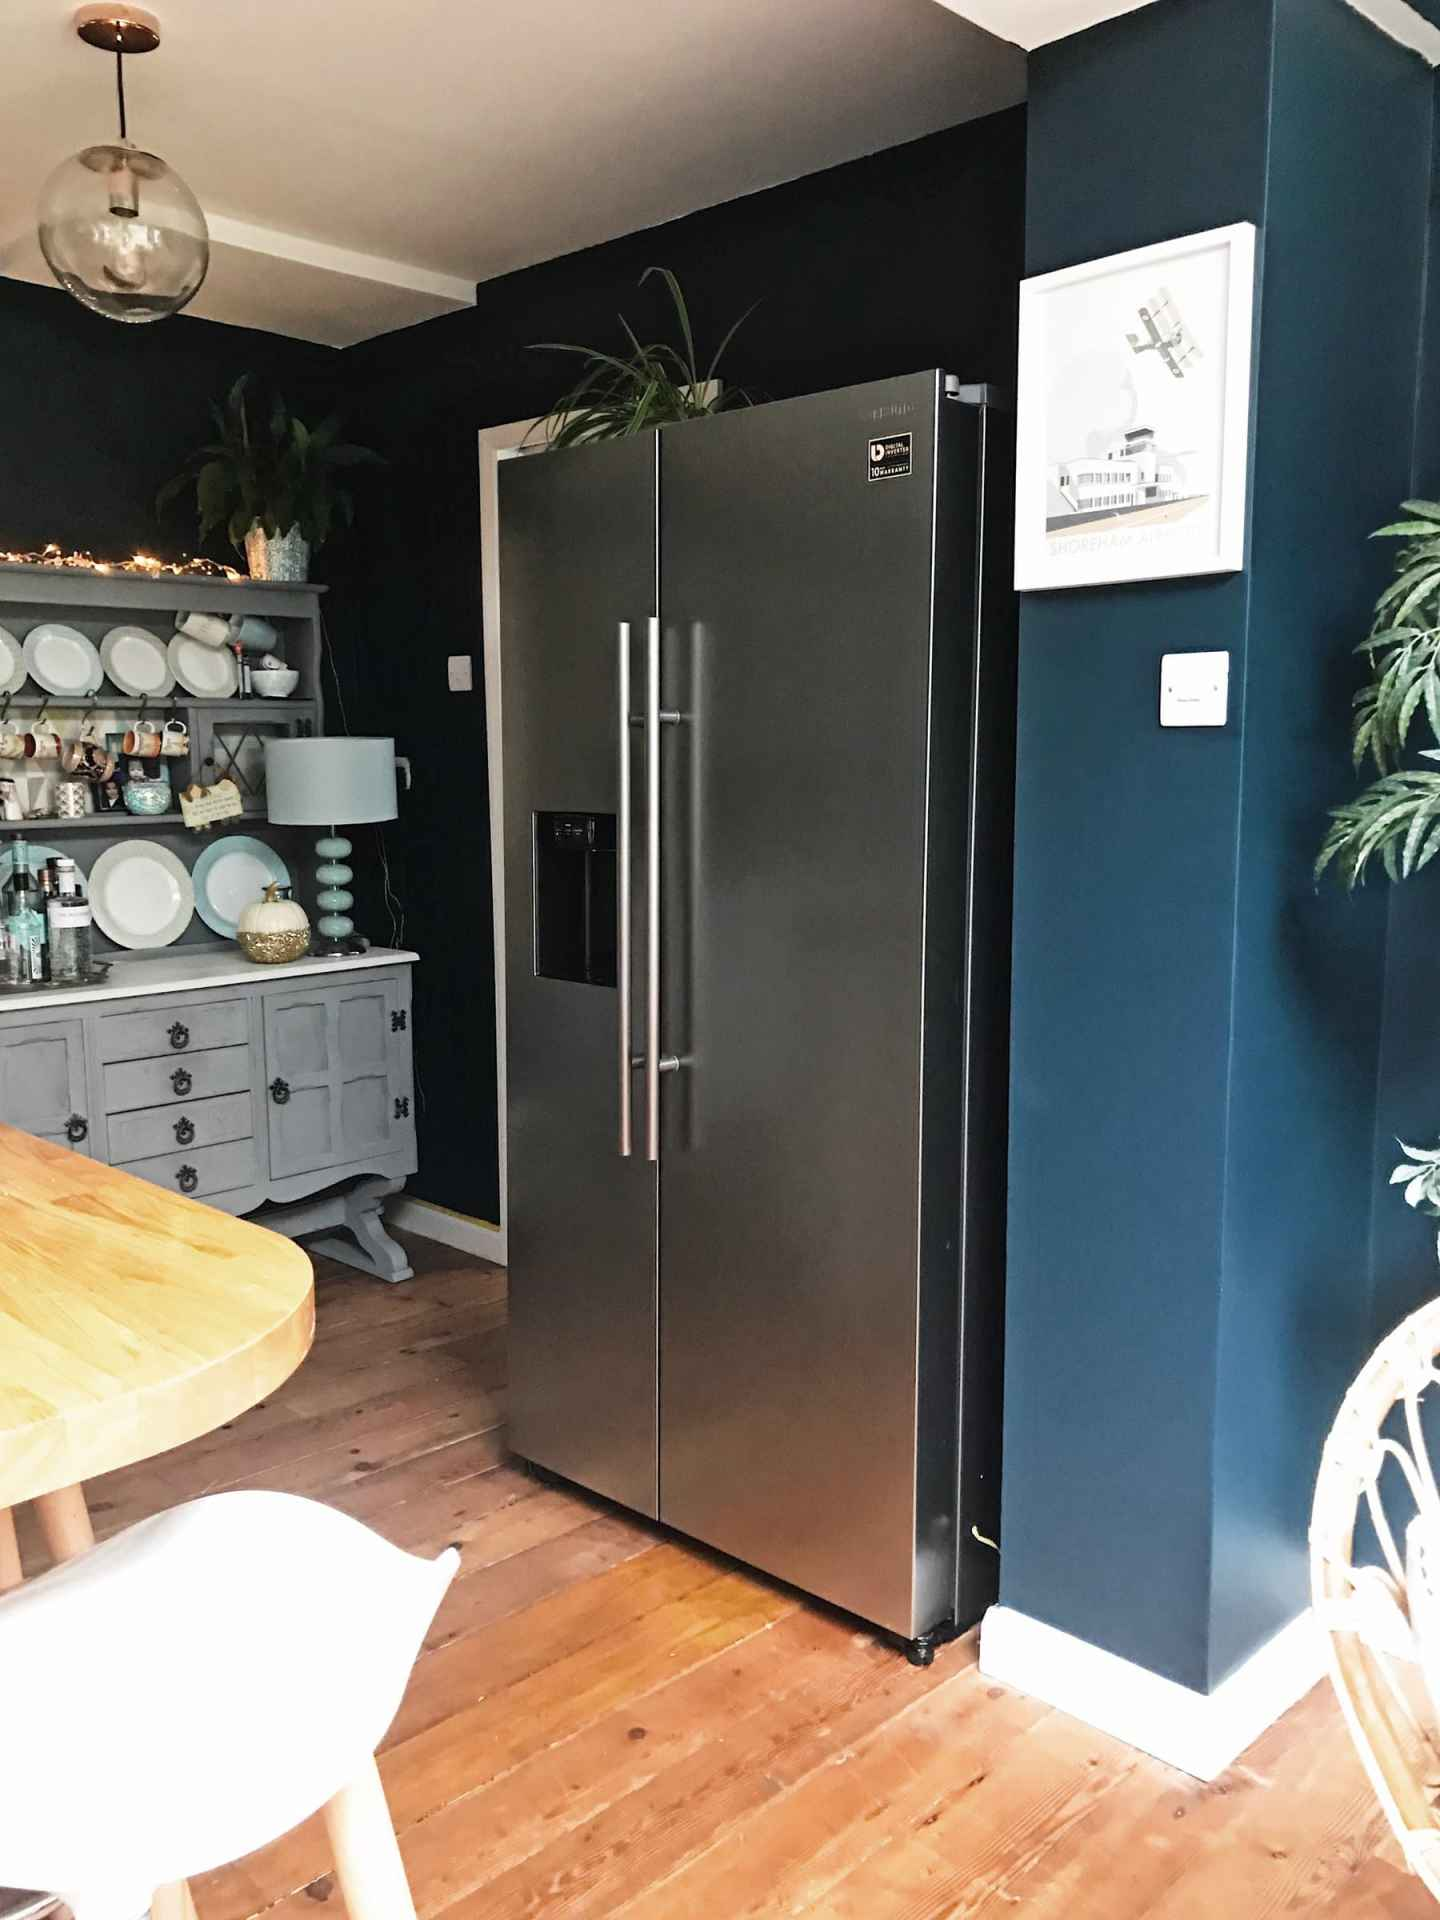 How our Samsung RS8000 fits perfectly into our kitchen